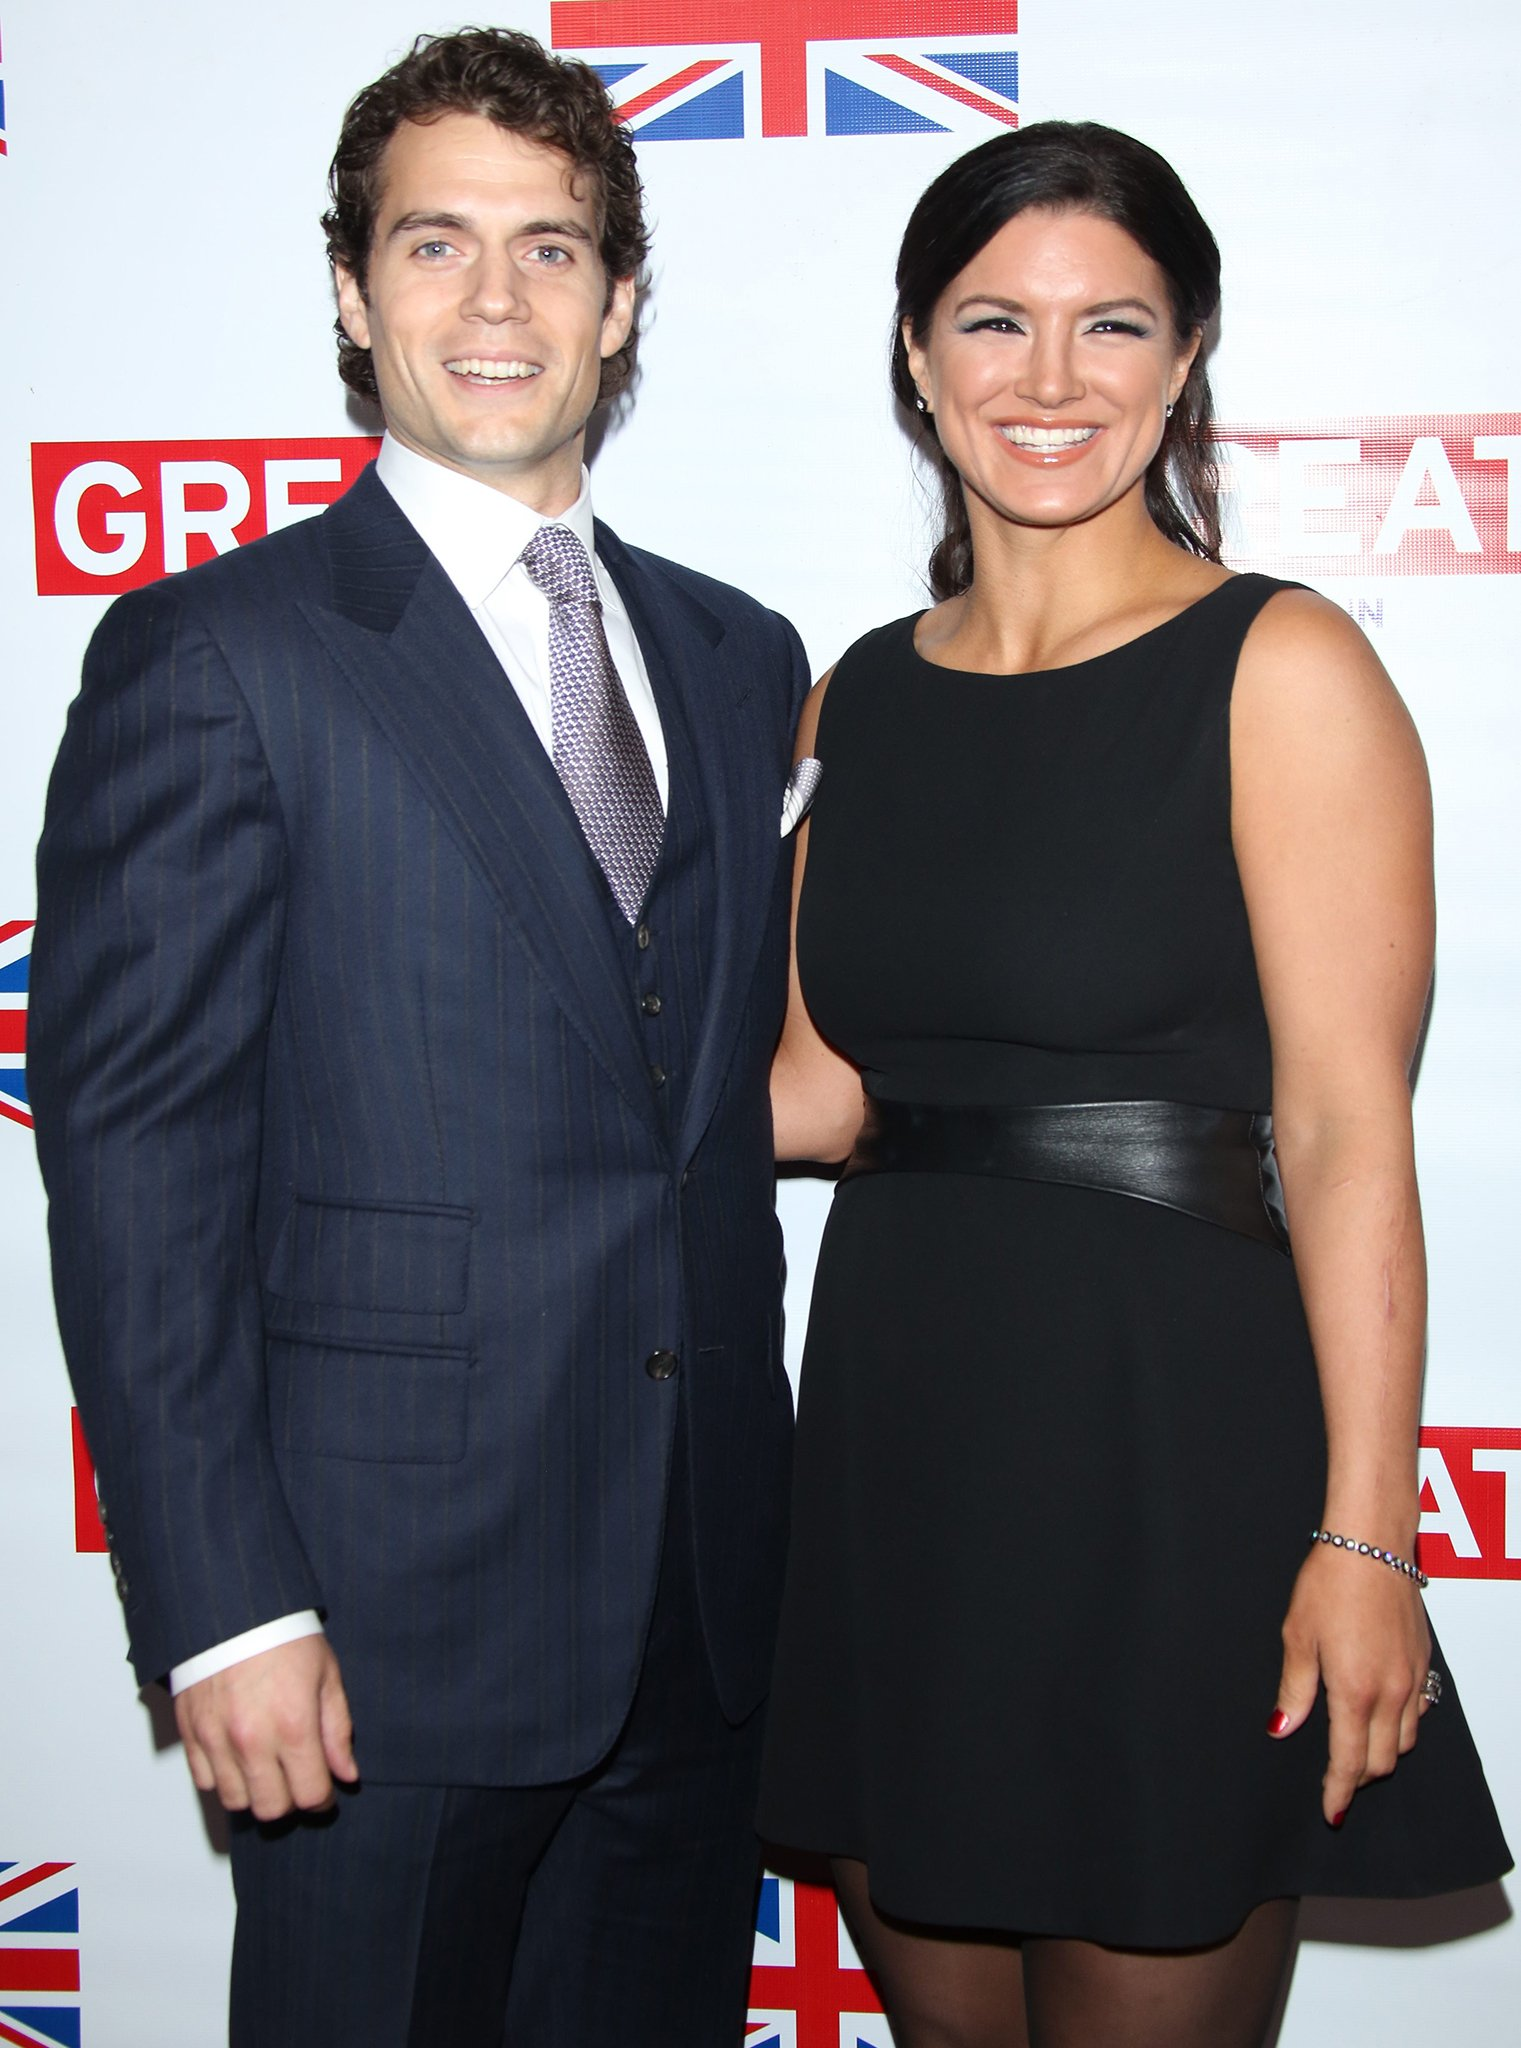 Henry Cavill and Gina Carano rekindled their romance in October 2013 before splitting again in December 2014